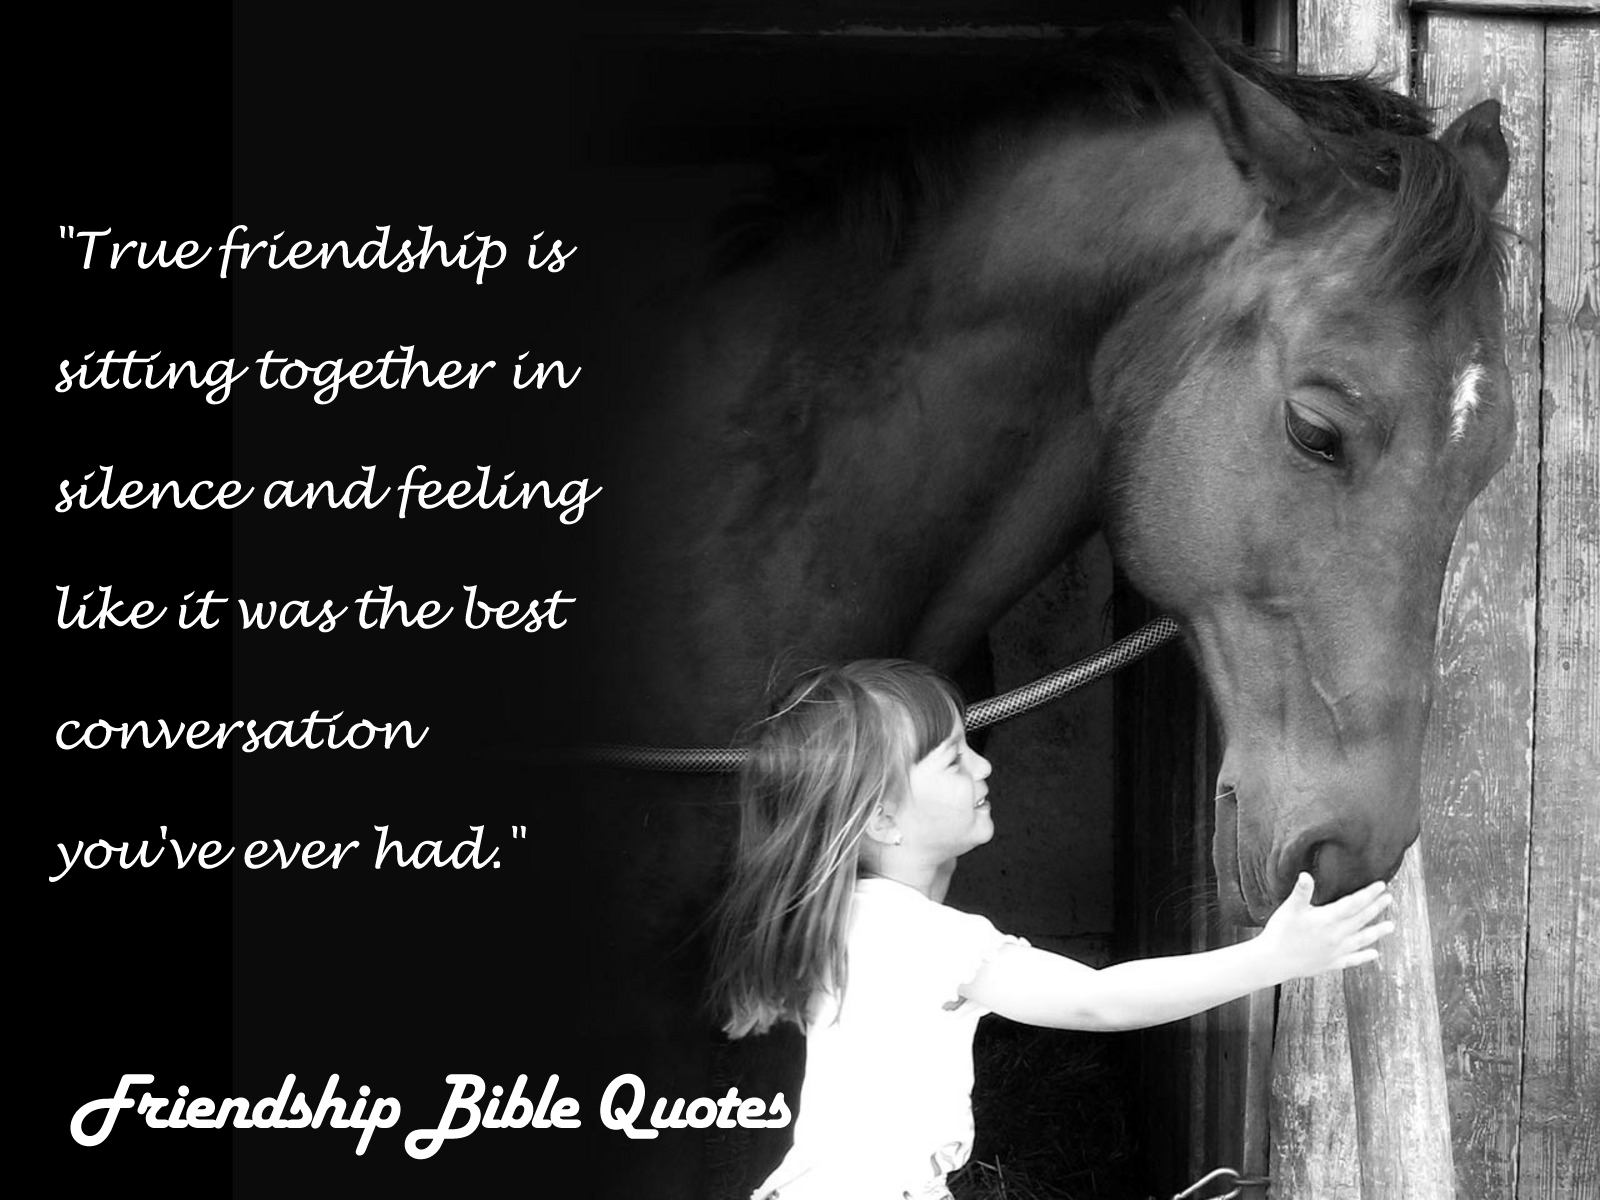 Quotes About True Friendship In The Bible : Bible quotes about true friendship quotesgram